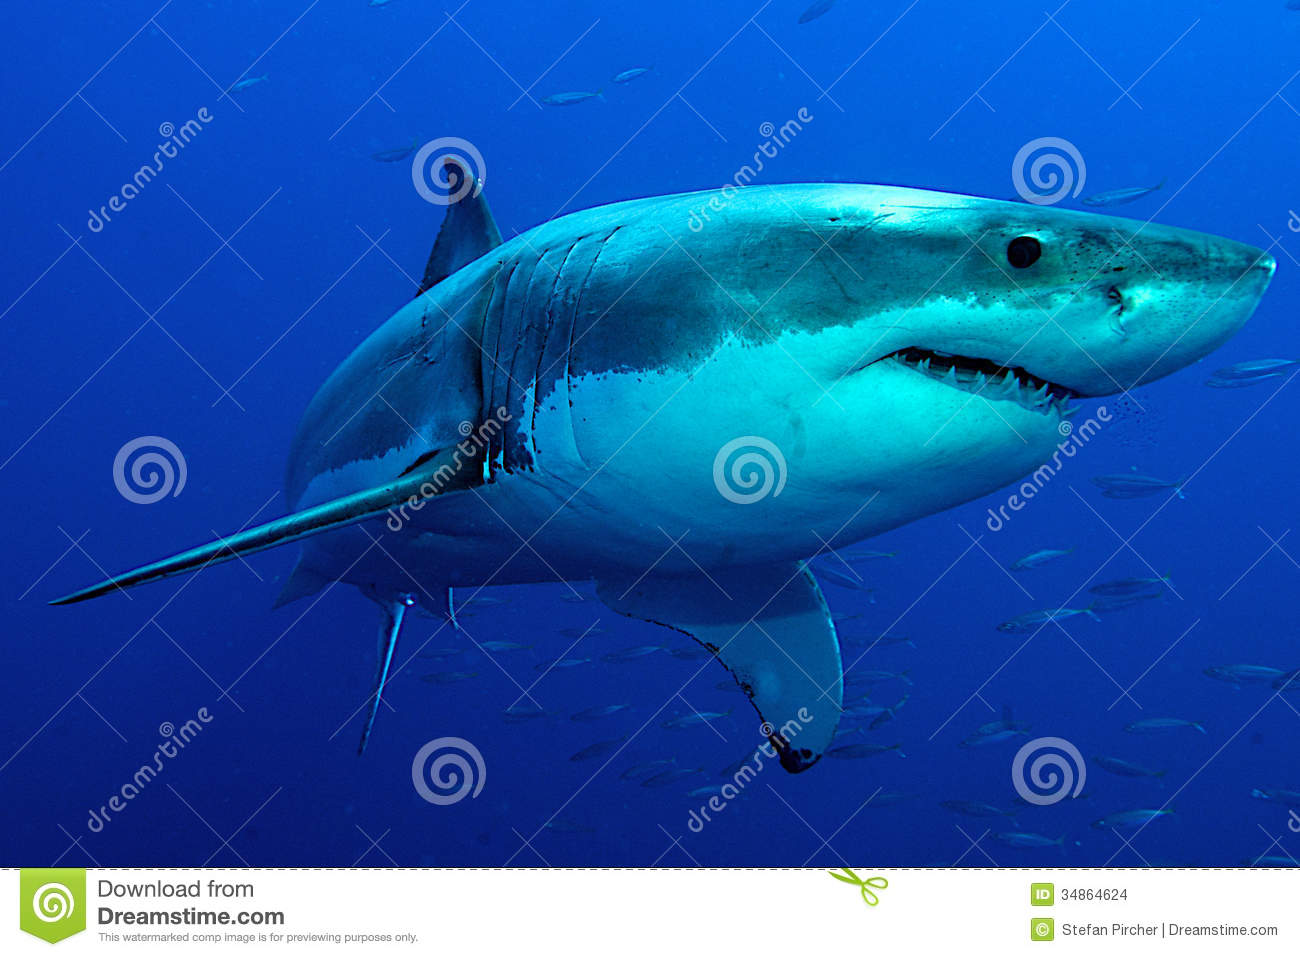 White Shark in blue water